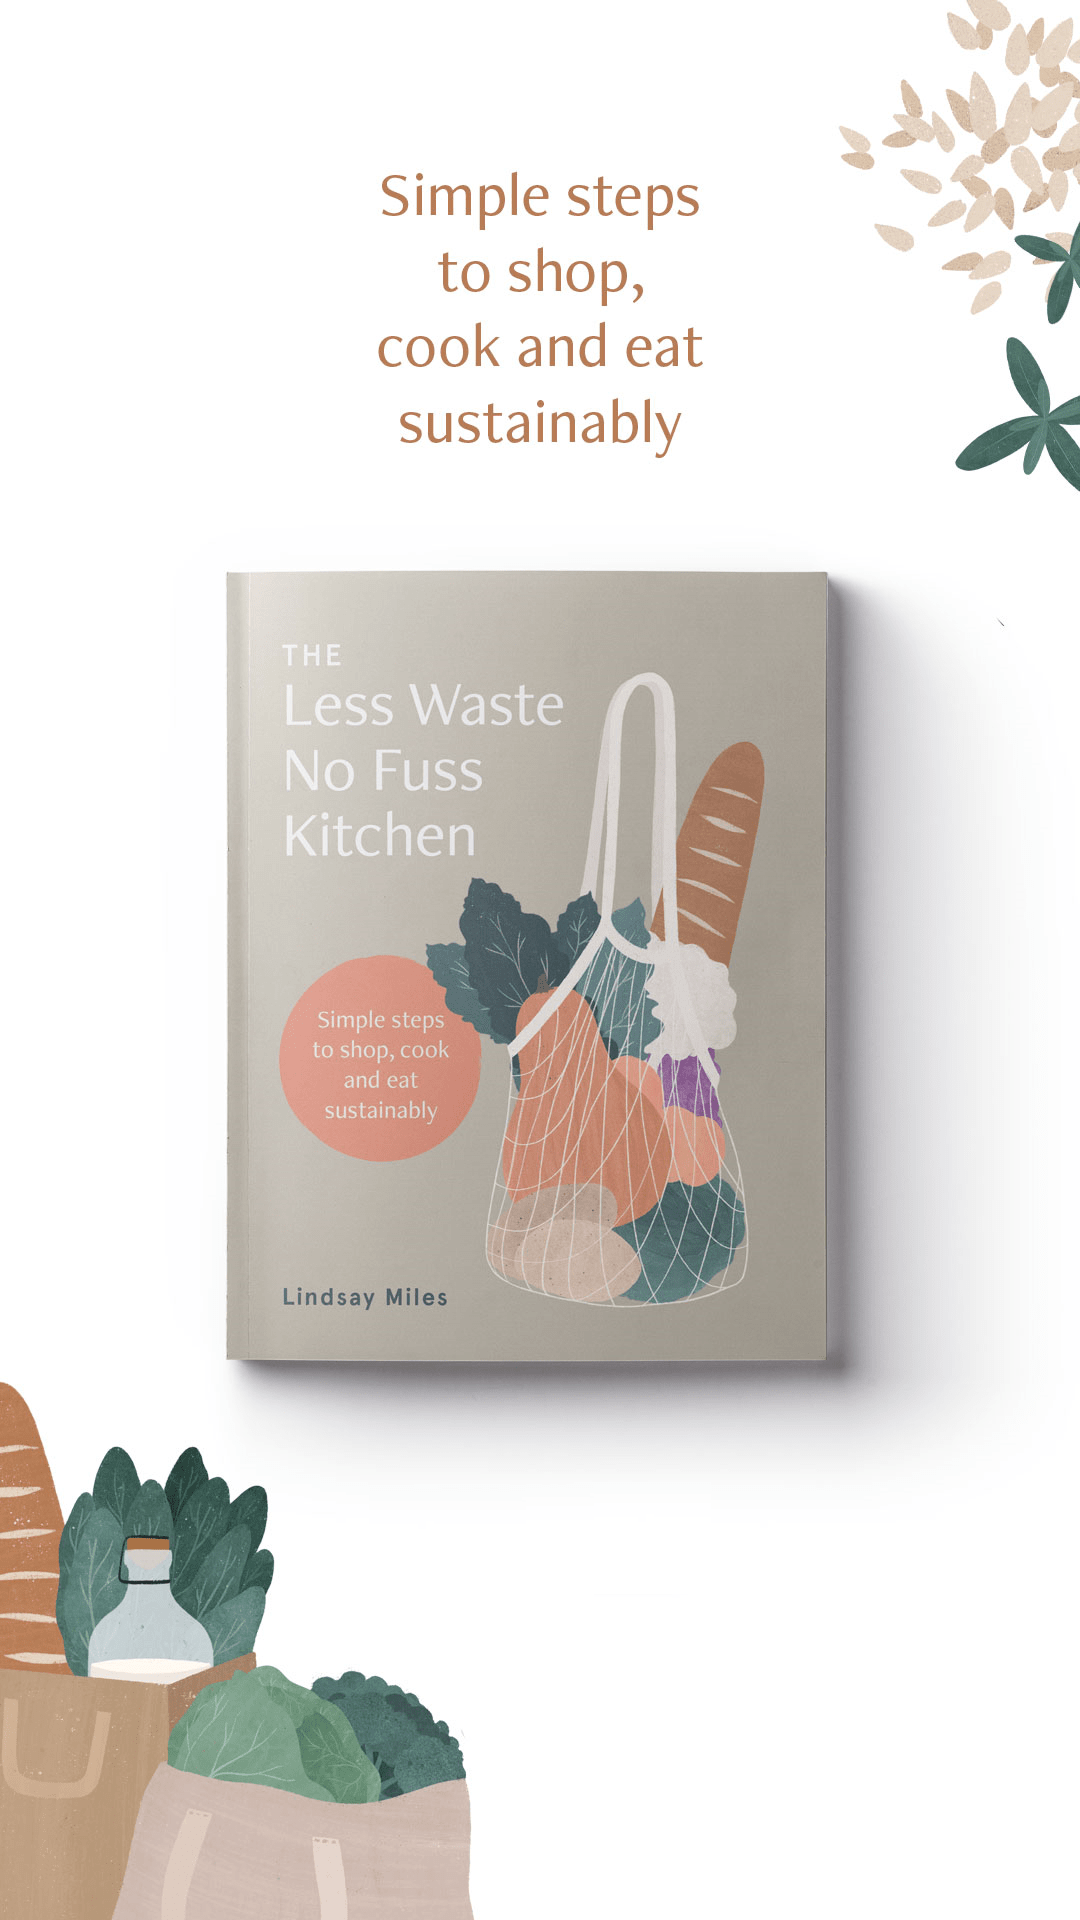 The Less Waste No Fuss Kitchen: simple steps to shop, cook and eat sustainably by Lindsay Miles from Treading My Own Path | Less waste, less stuff, sustainable living. Reduce plastic, use less plastic, how to reduce trash, create less waste, fight food waste, food waste tips, how to reduce food waste, low carbon living, eat sustainably, green living, sustainable living, eco-friendly choices. Published June 2020. More at https://treadingmyownpath.com/lesswastekitchen